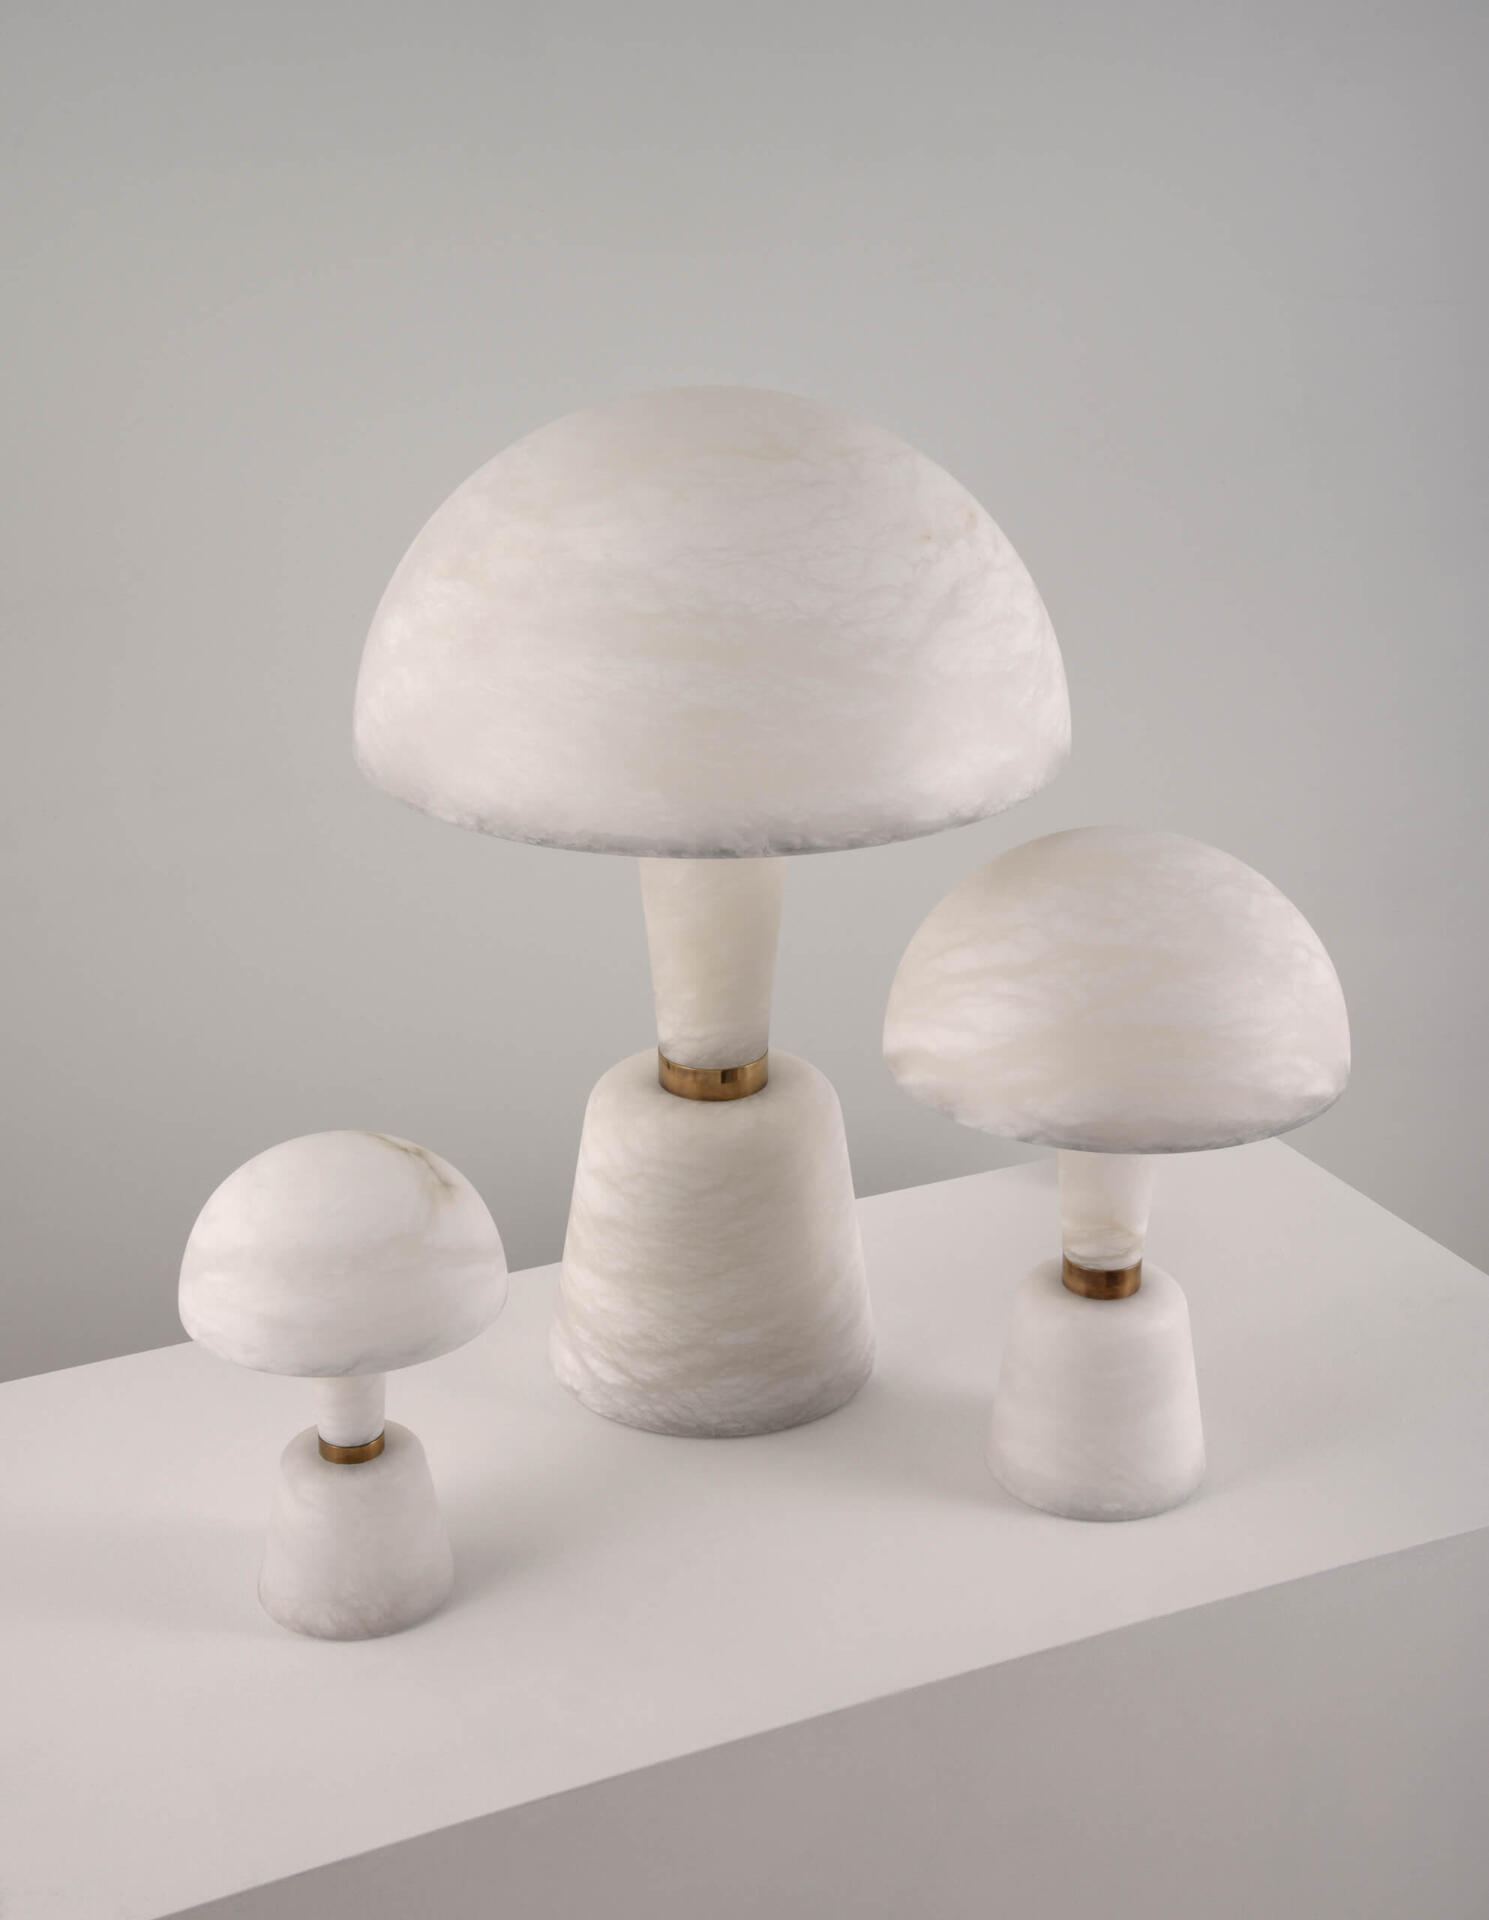 Large Alabaster Cep by Collier Webb - a beautifully crafted alabaster table light